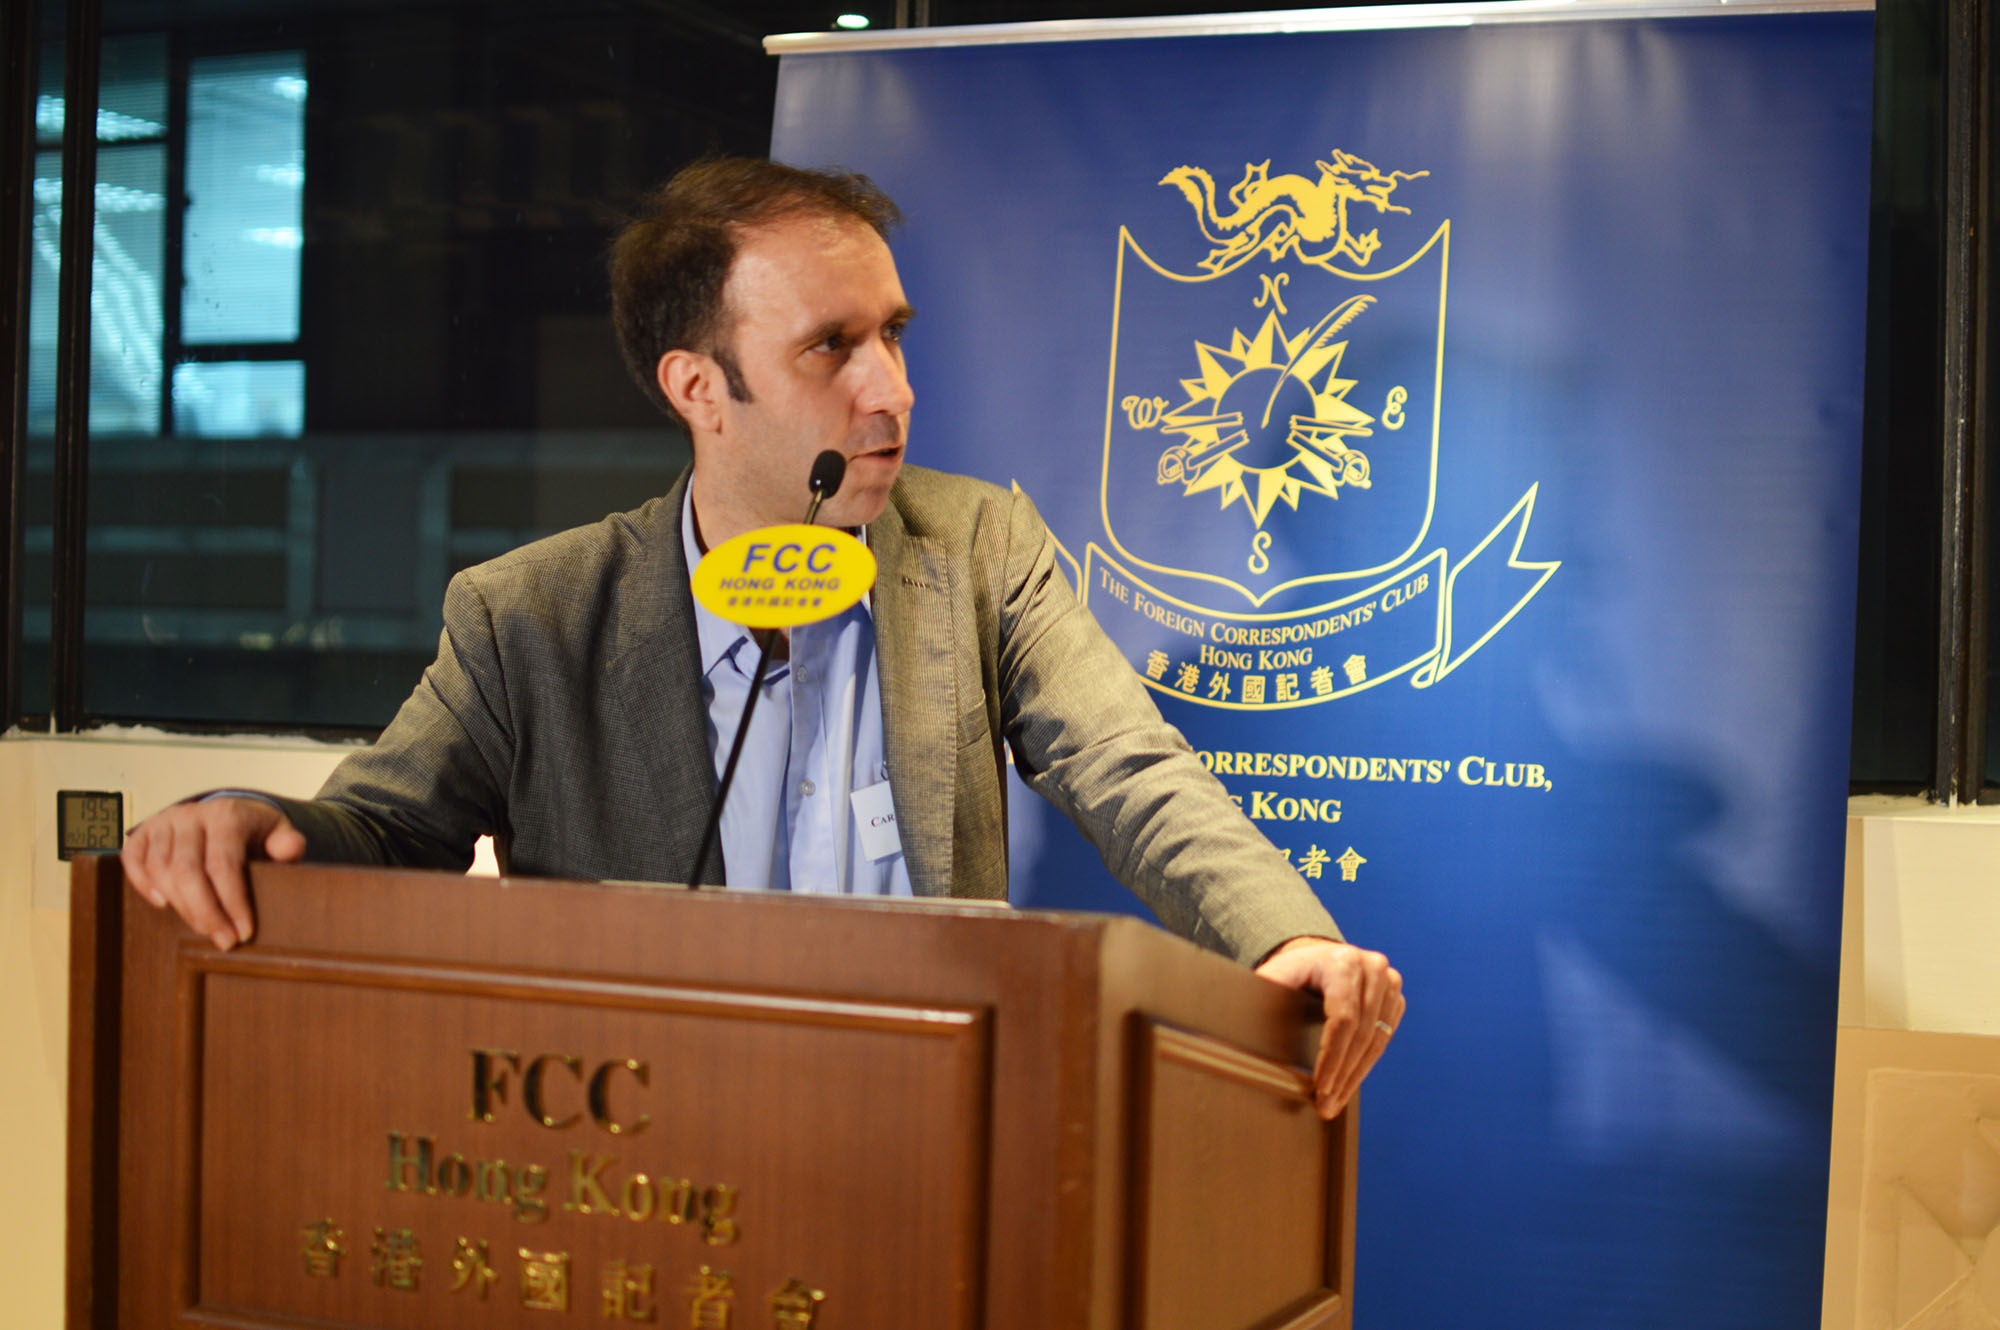 José Carlos Matias spoke about press freedom in Macau on January 18, 2018. Photo: Sarah Graham/FCC